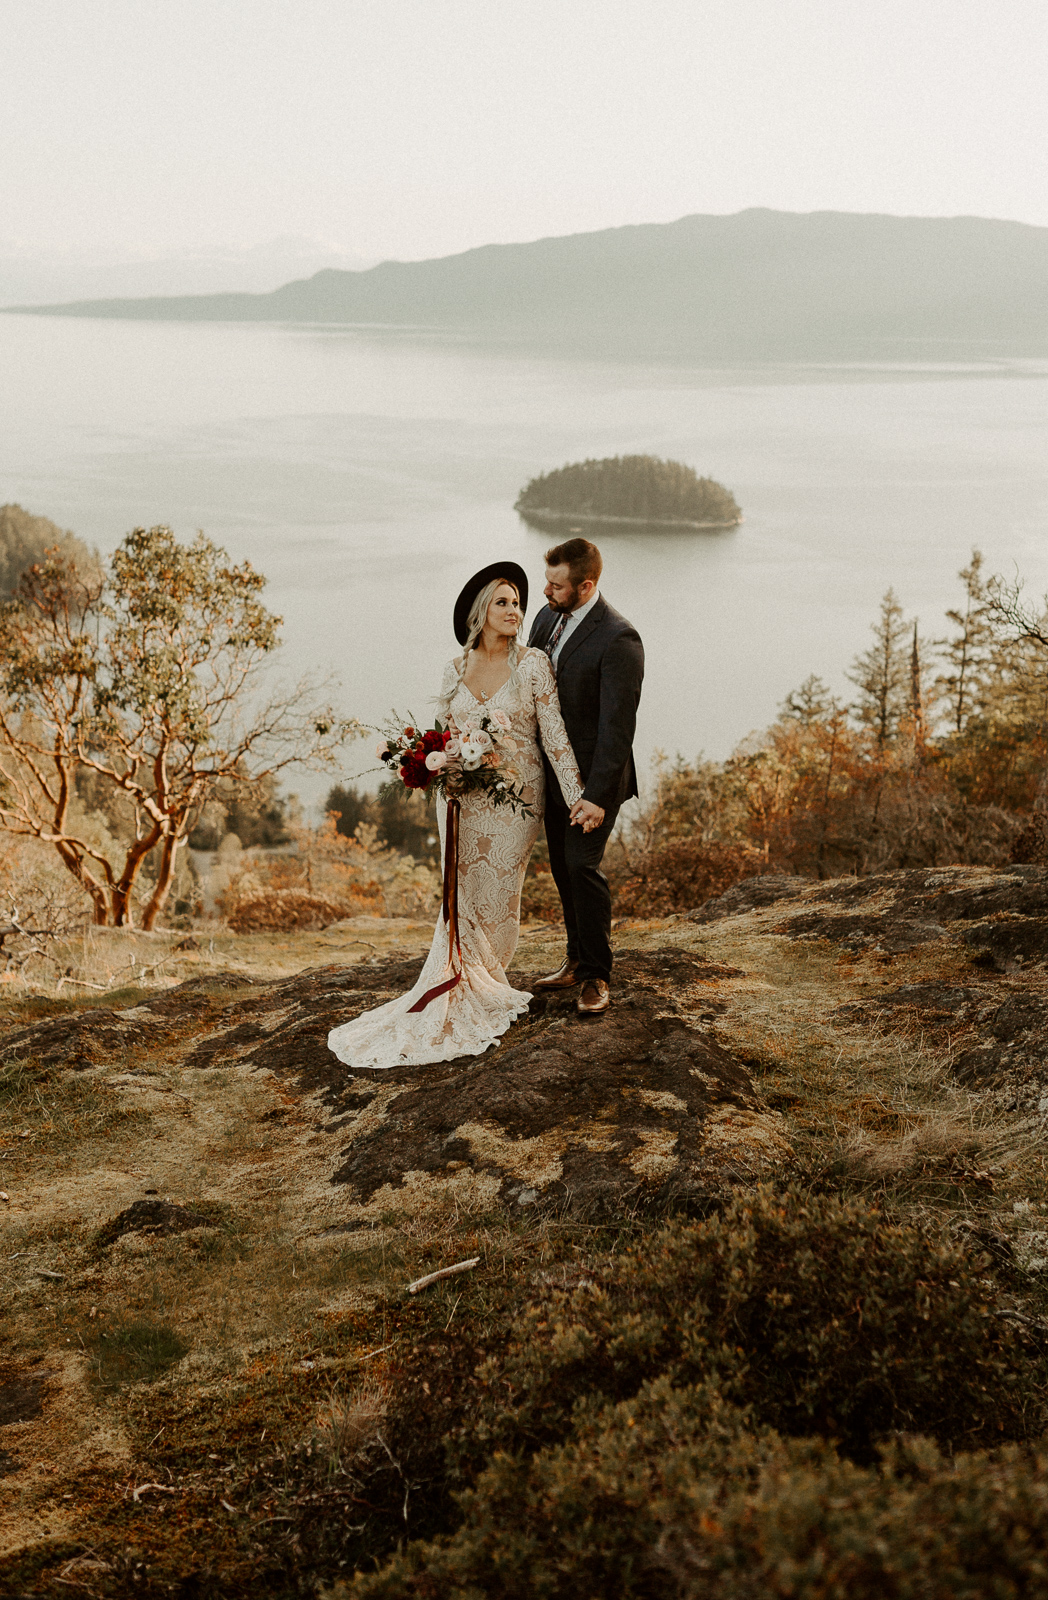 Luke Lambertson Photo_BritishColumbia_Canada_AdventurousCouple_Elopement_IMG-7938.jpg